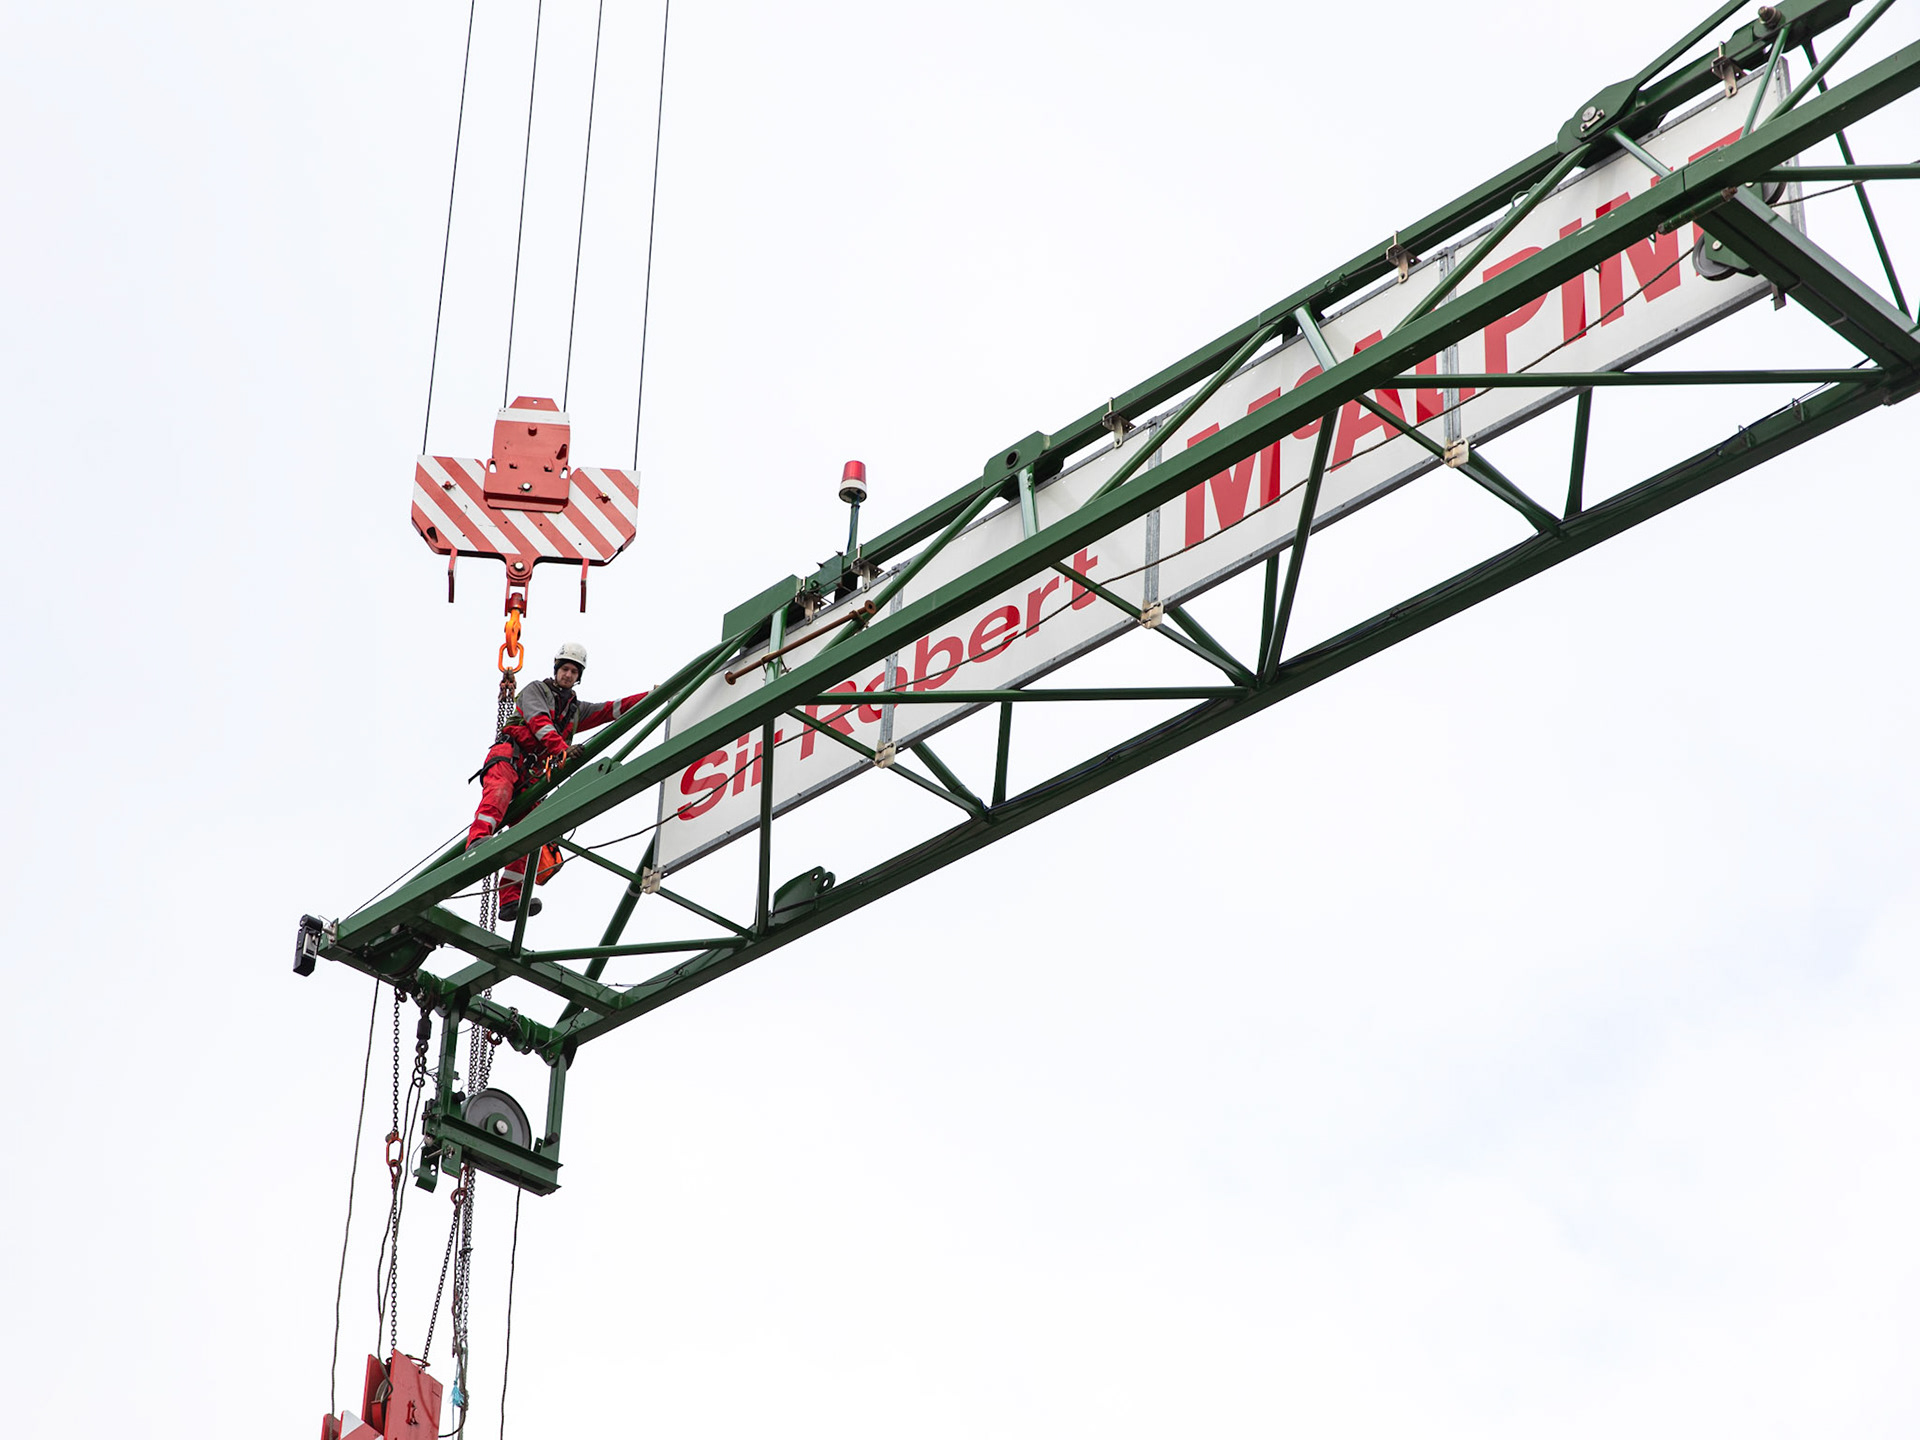 Commercial Photography at Industrial Tower Cranes the end of a crane with worker on the very end at hight